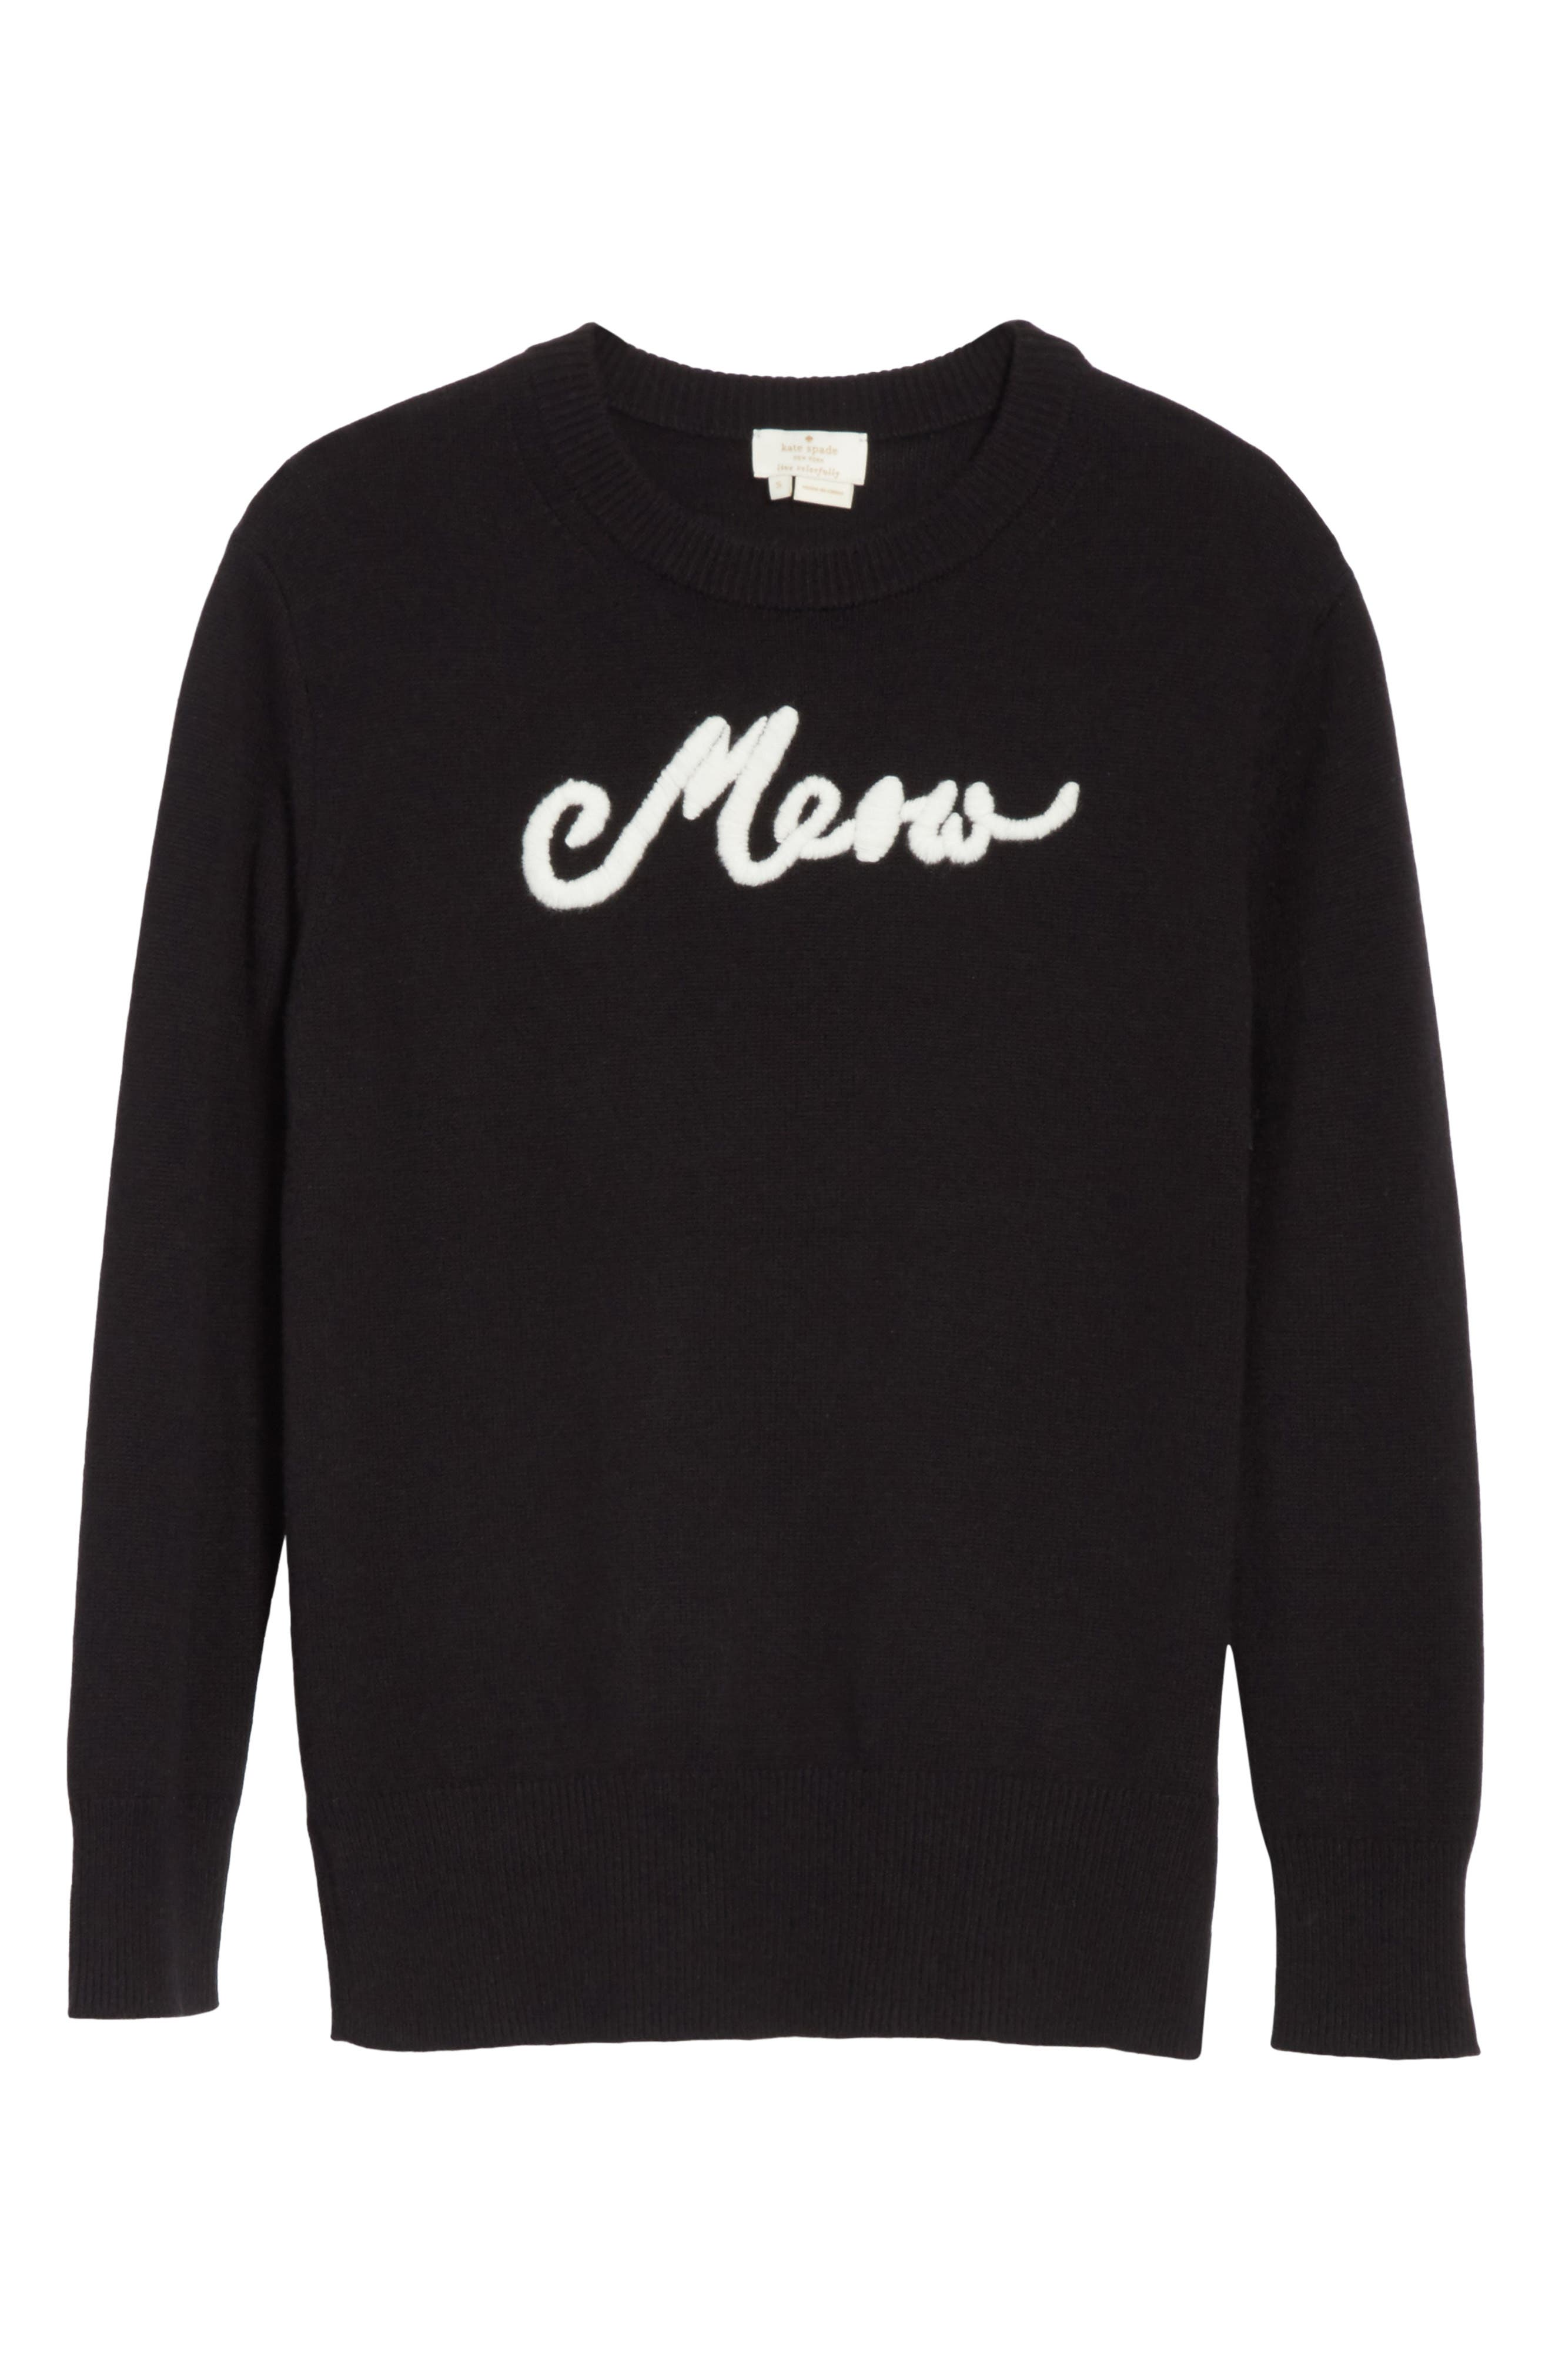 meow sweater,                             Alternate thumbnail 6, color,                             001